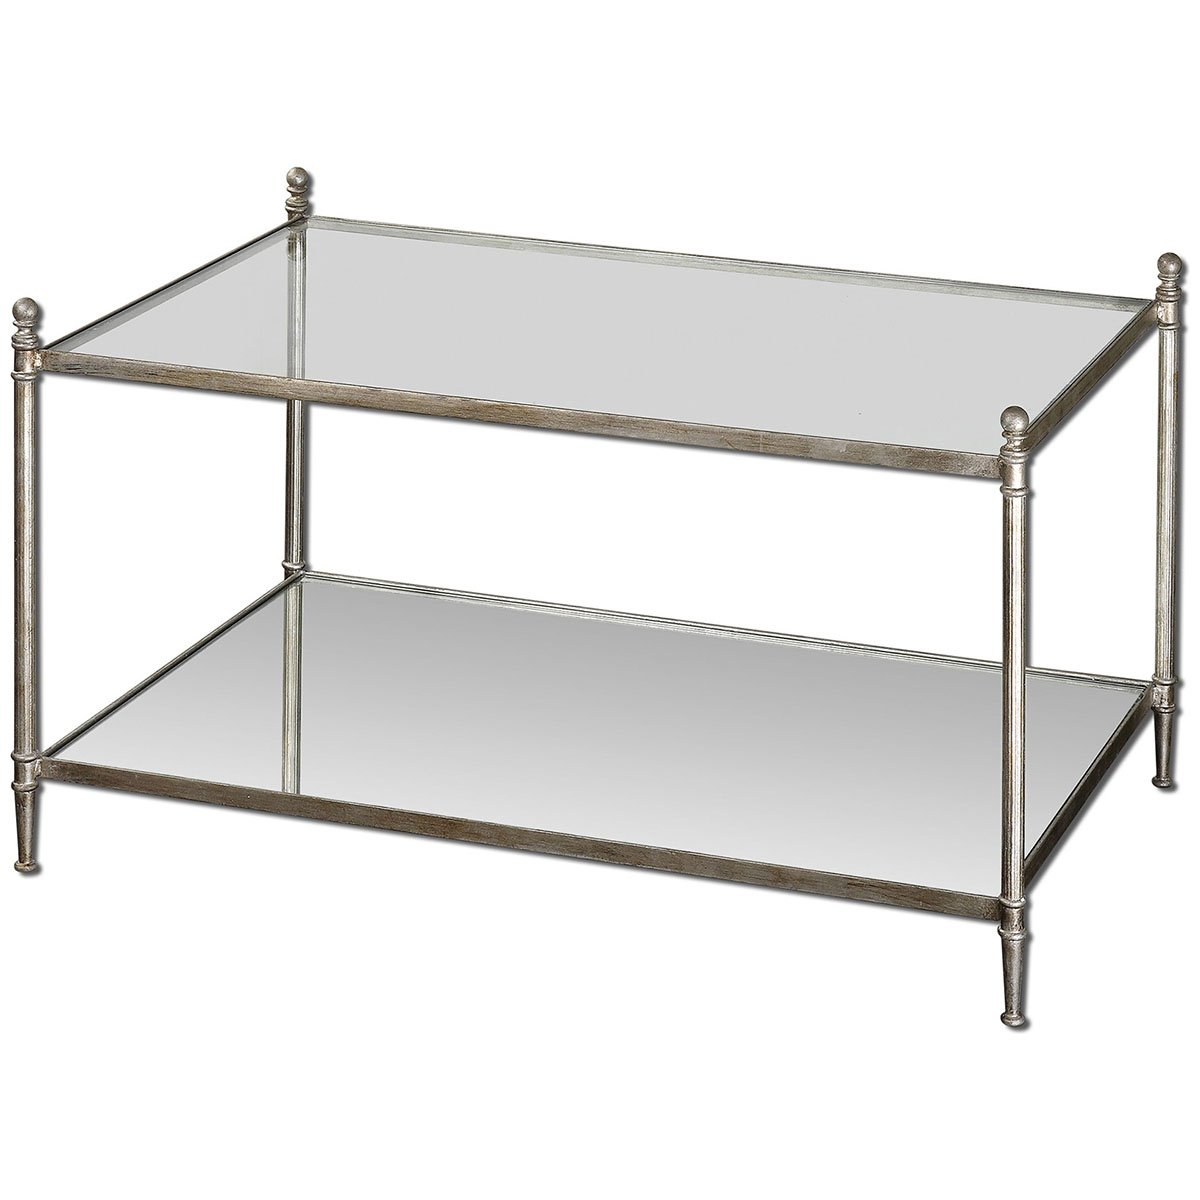 Good Amazon.com: Uttermost 24281 Gannon Mirrored Glass Coffee Table: Kitchen U0026  Dining